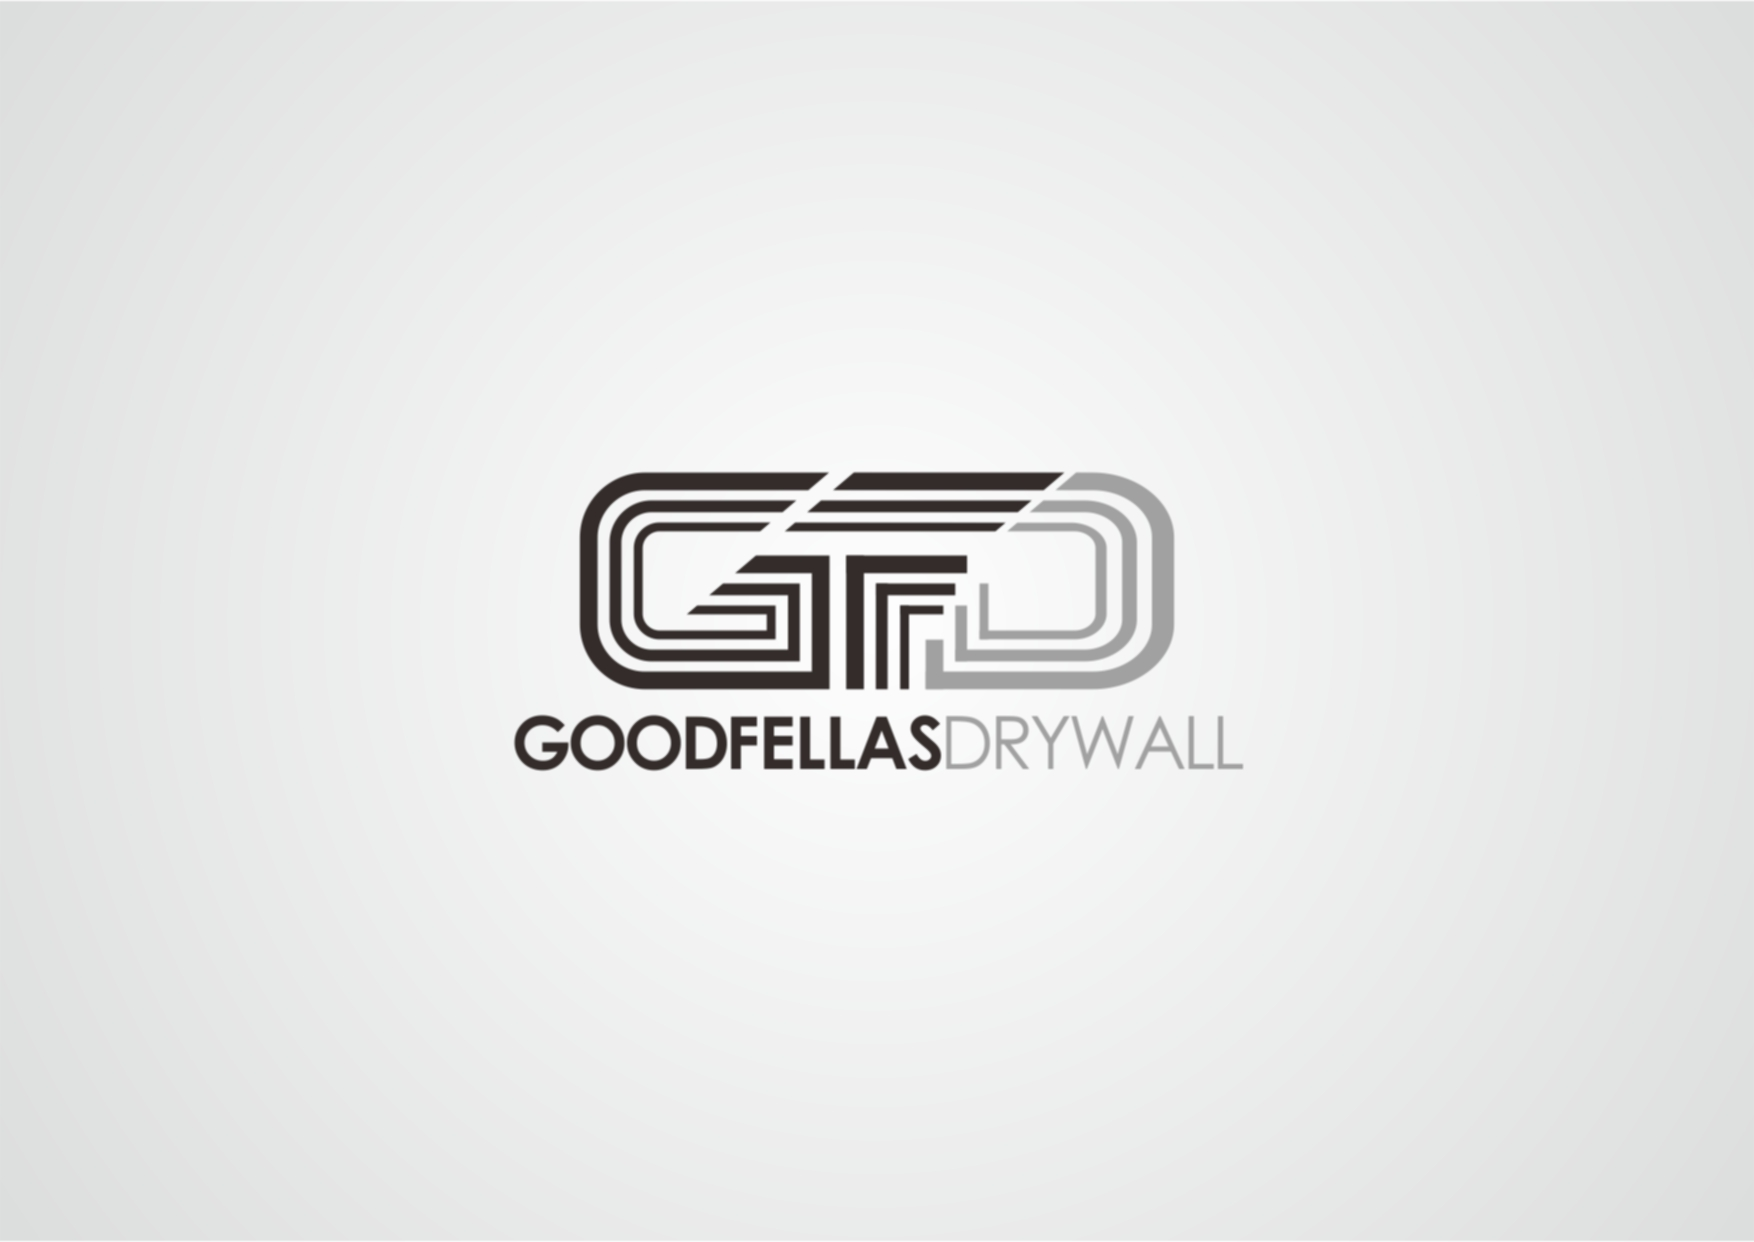 Logo Design by Private User - Entry No. 55 in the Logo Design Contest Creative Logo Design for Goodfellas Drywall.